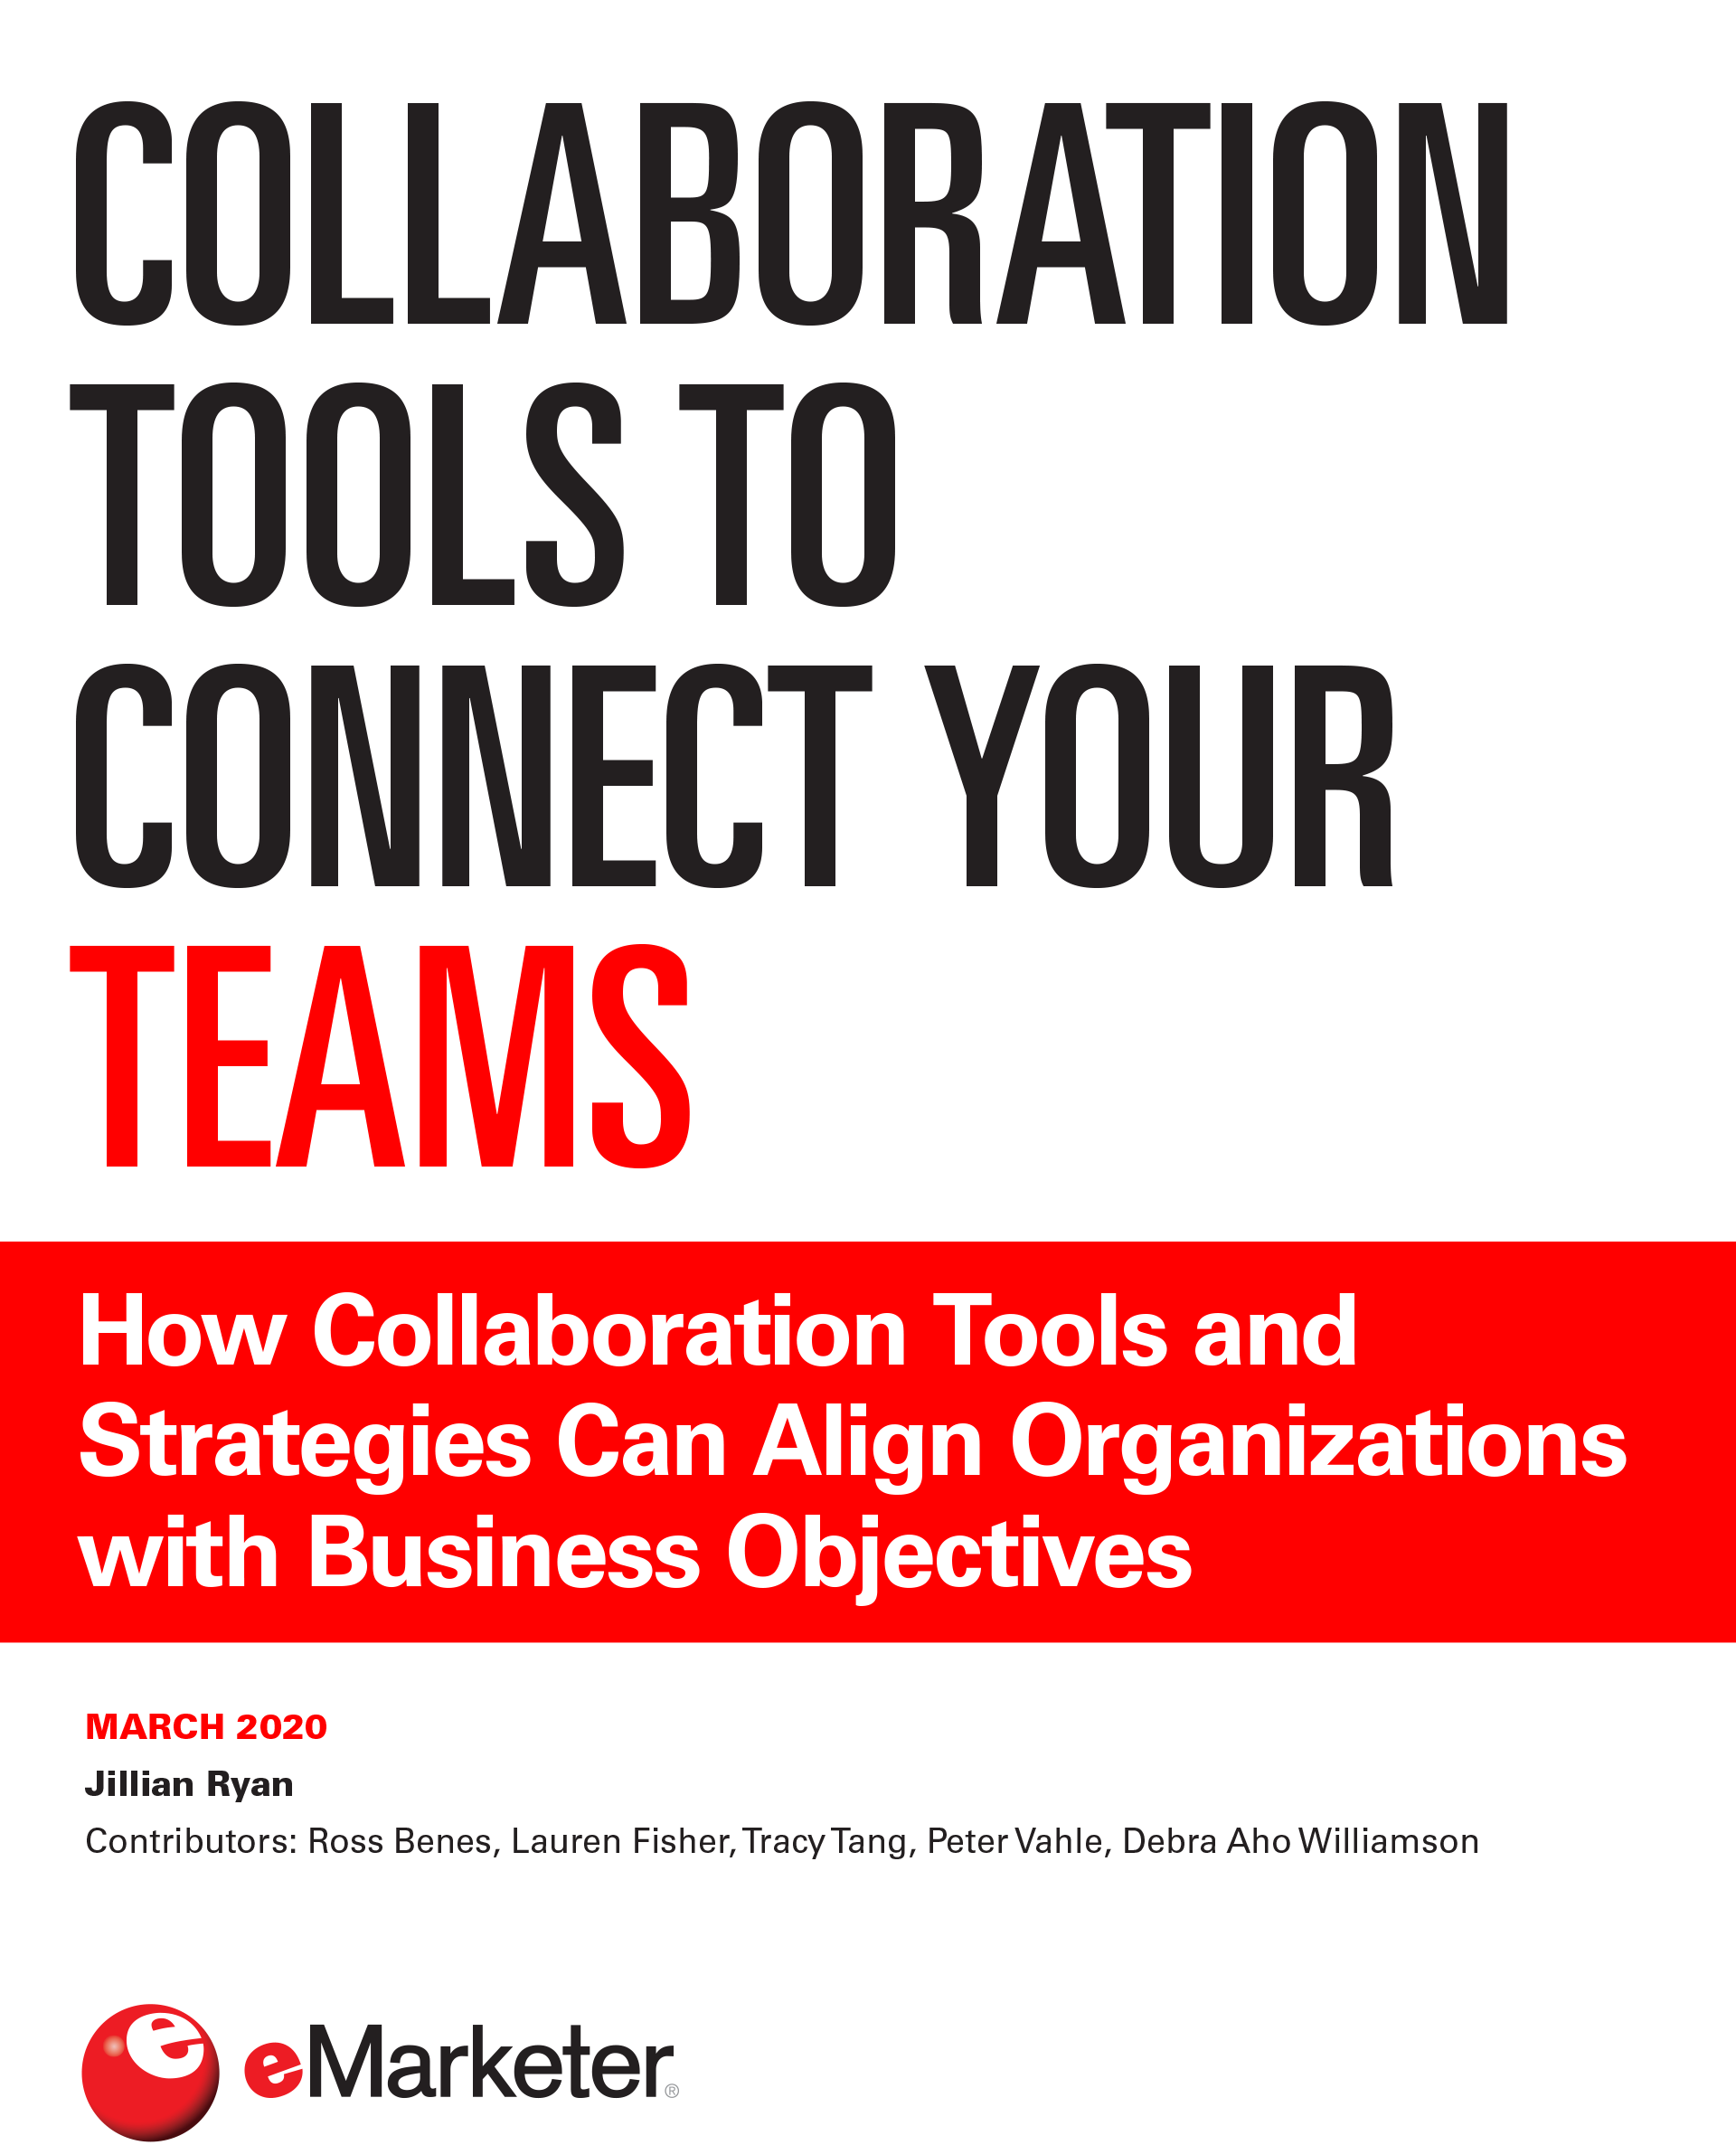 The Collaboration Tools to Connect Your Teams Report